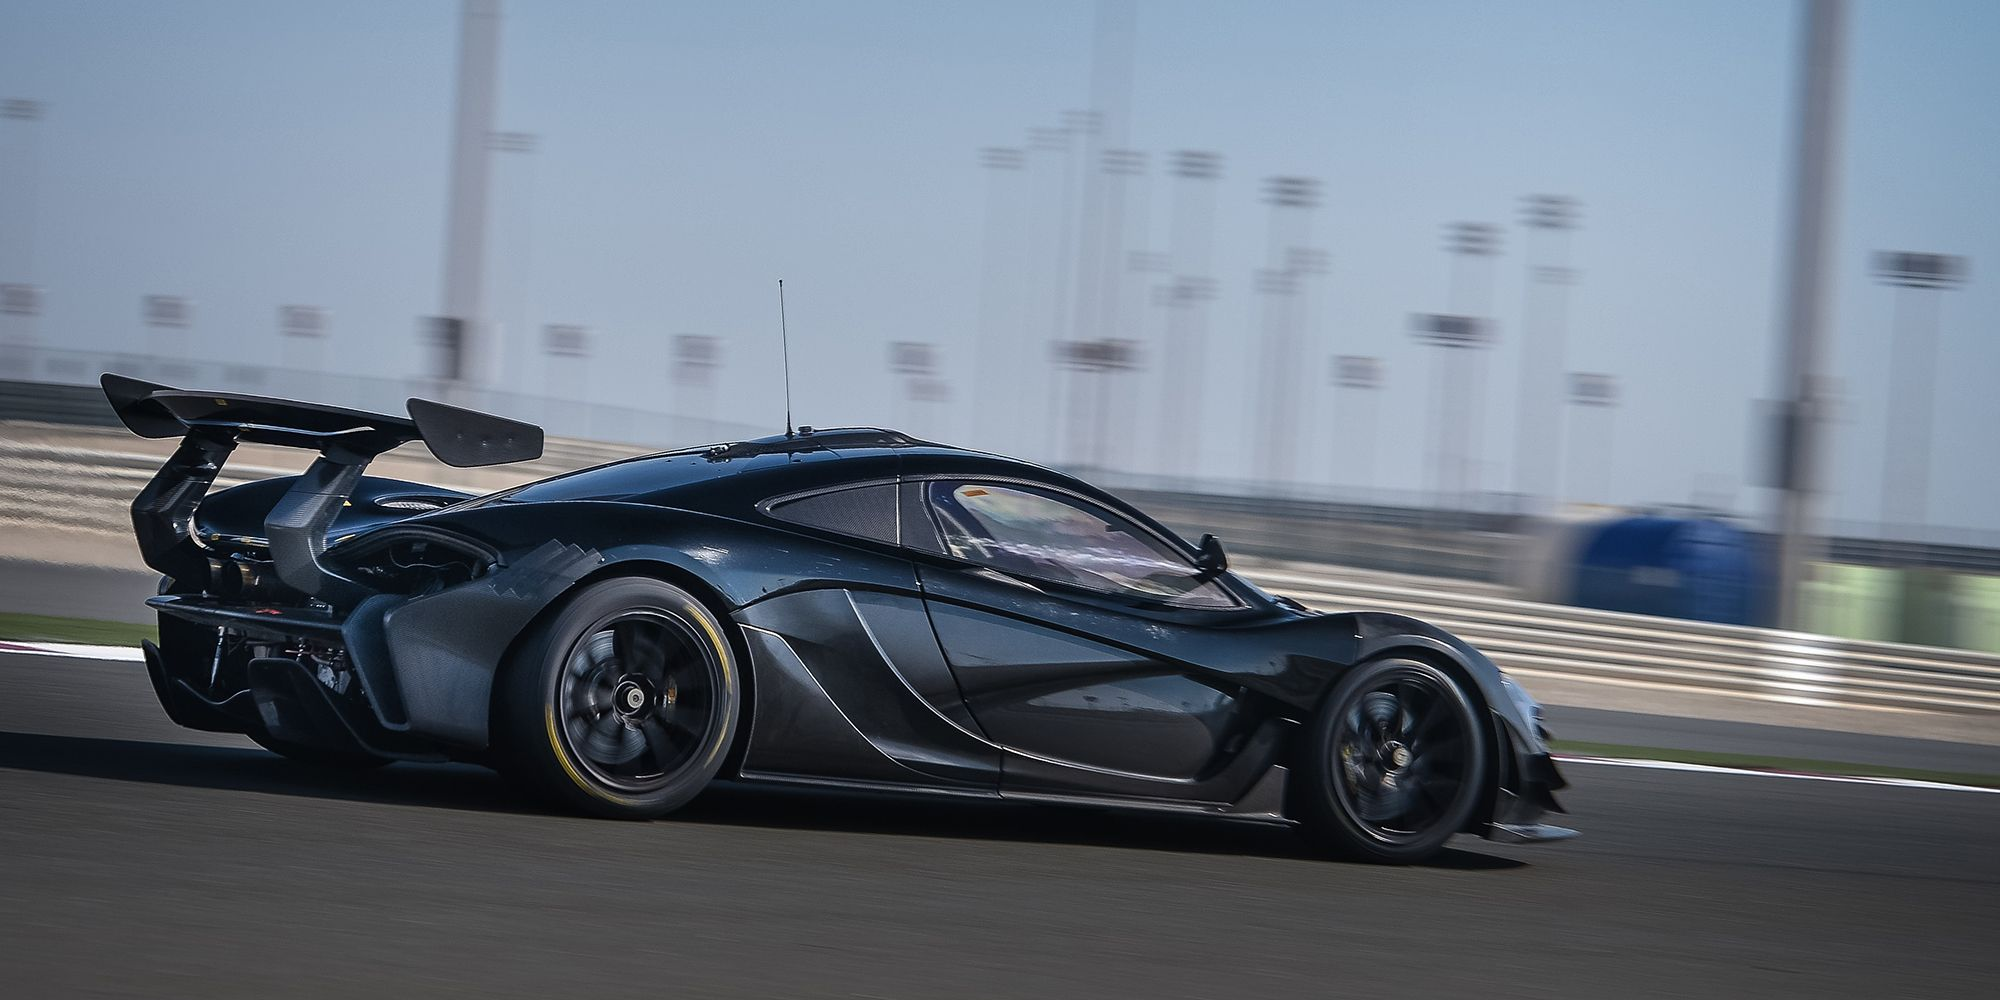 2018 mclaren p15. unique p15 mclaren will reportedly launch its most extreme road car ever this year on 2018 mclaren p15